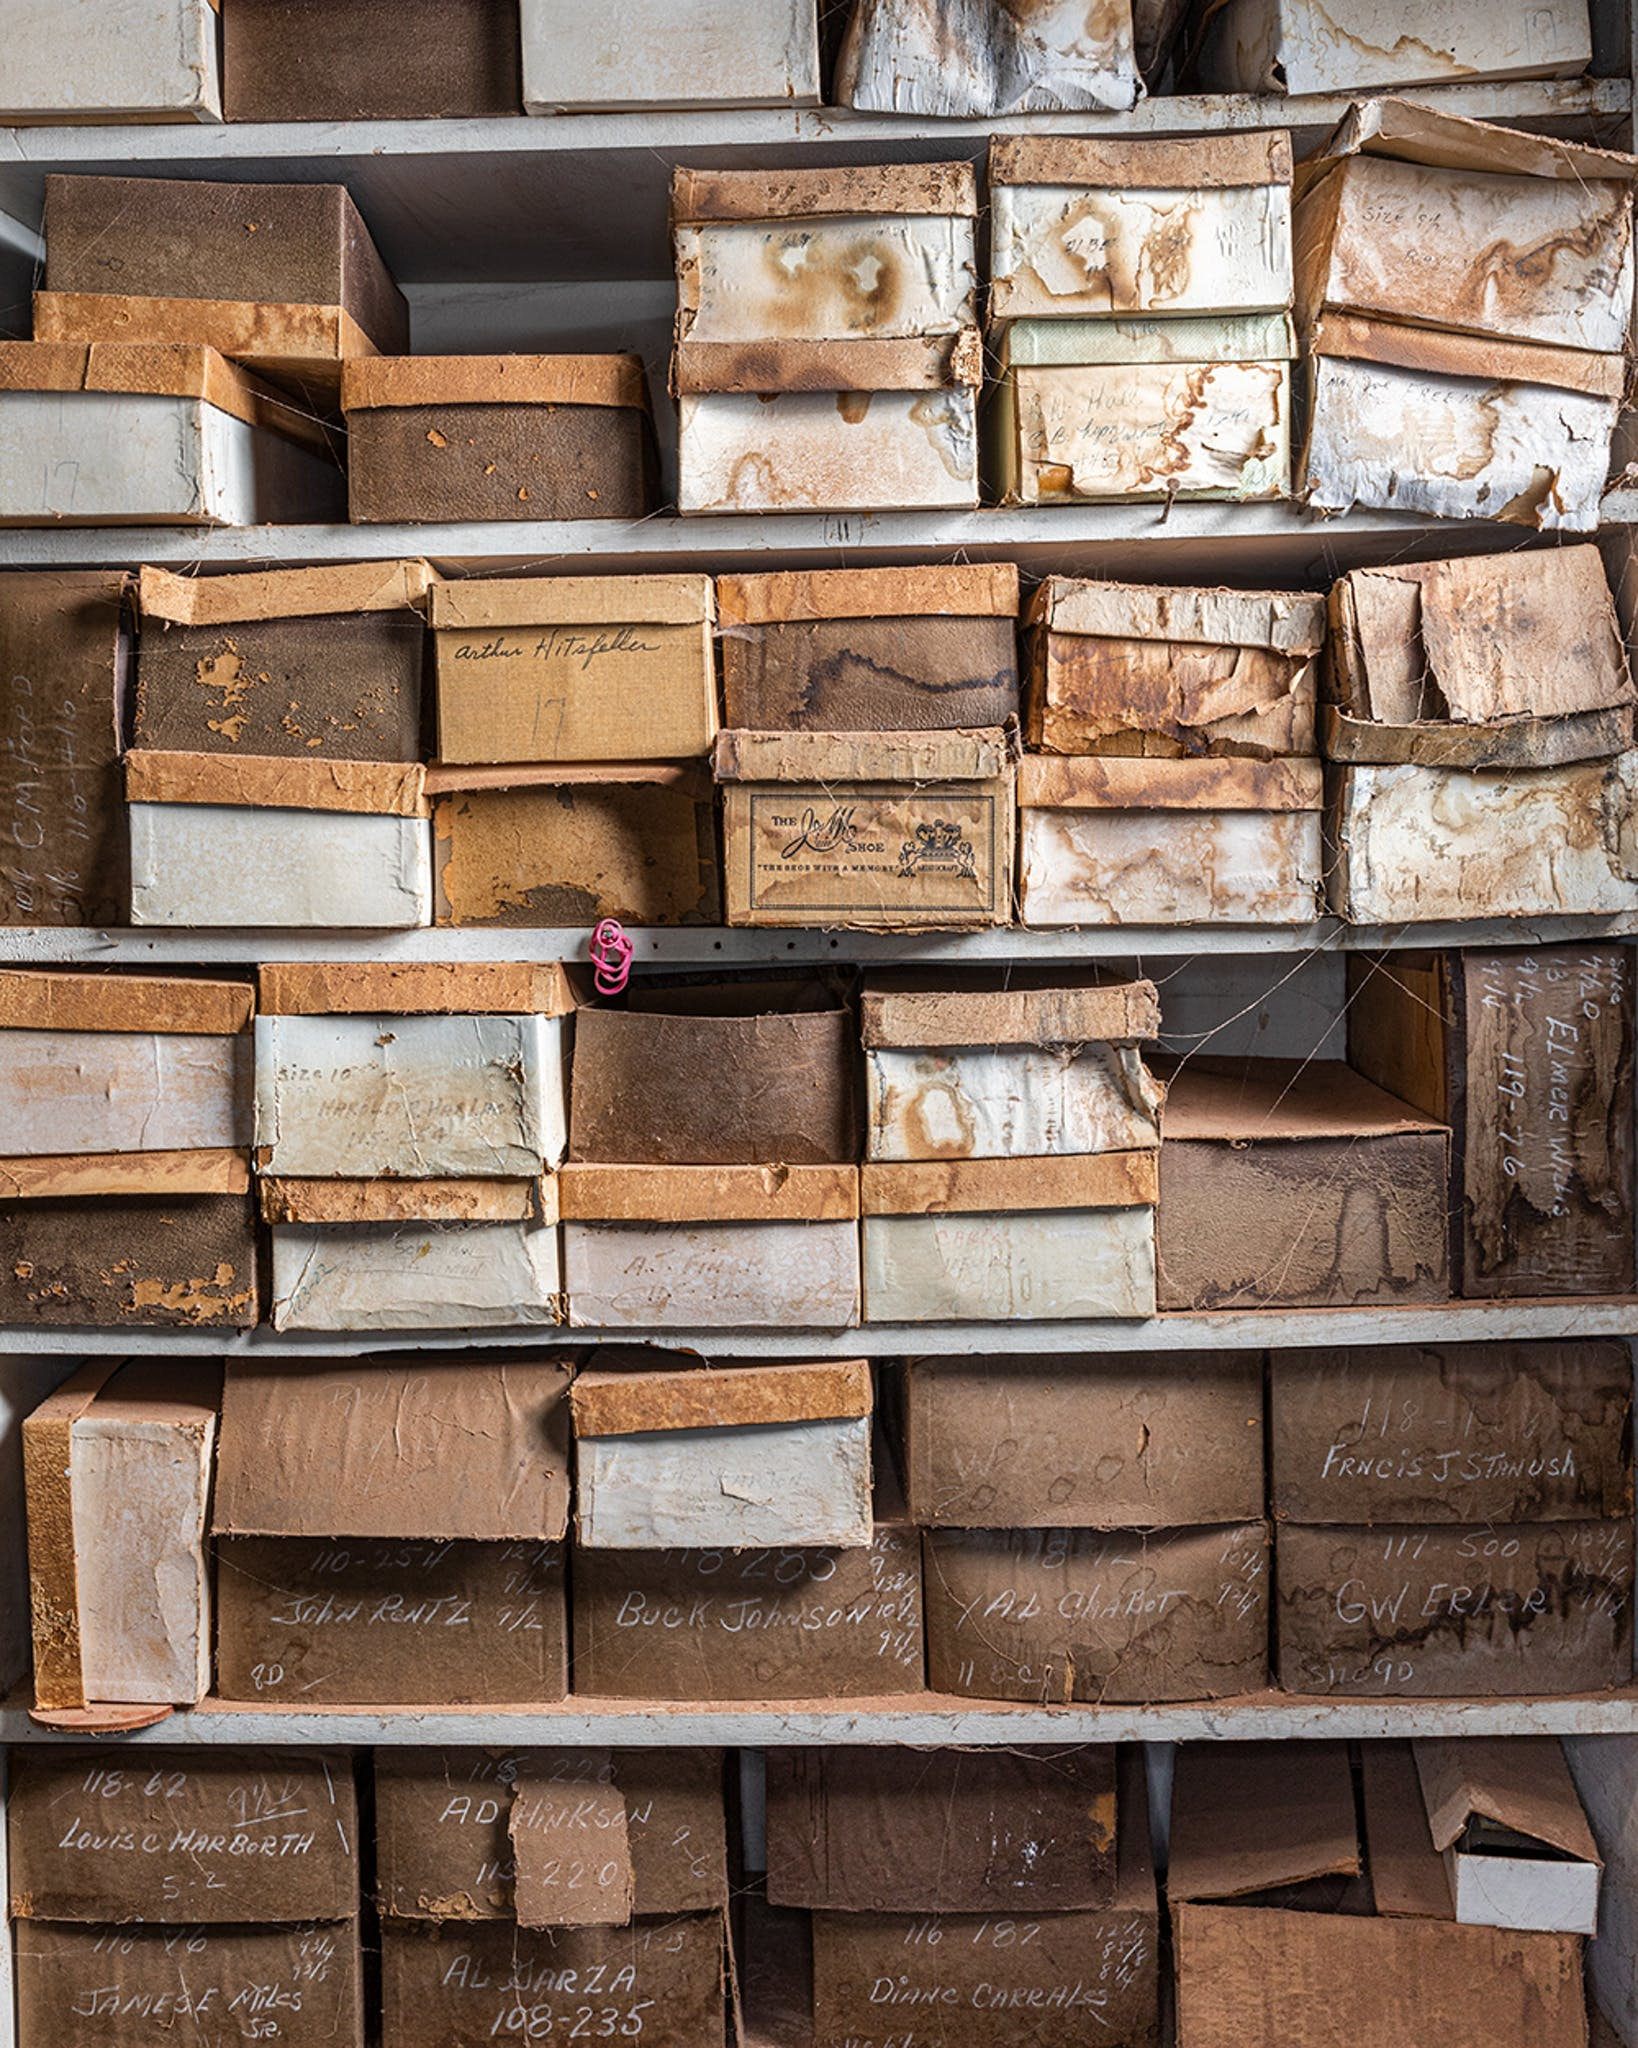 Weathered boxes containing lasts belonging to some of Little's oldest customers.